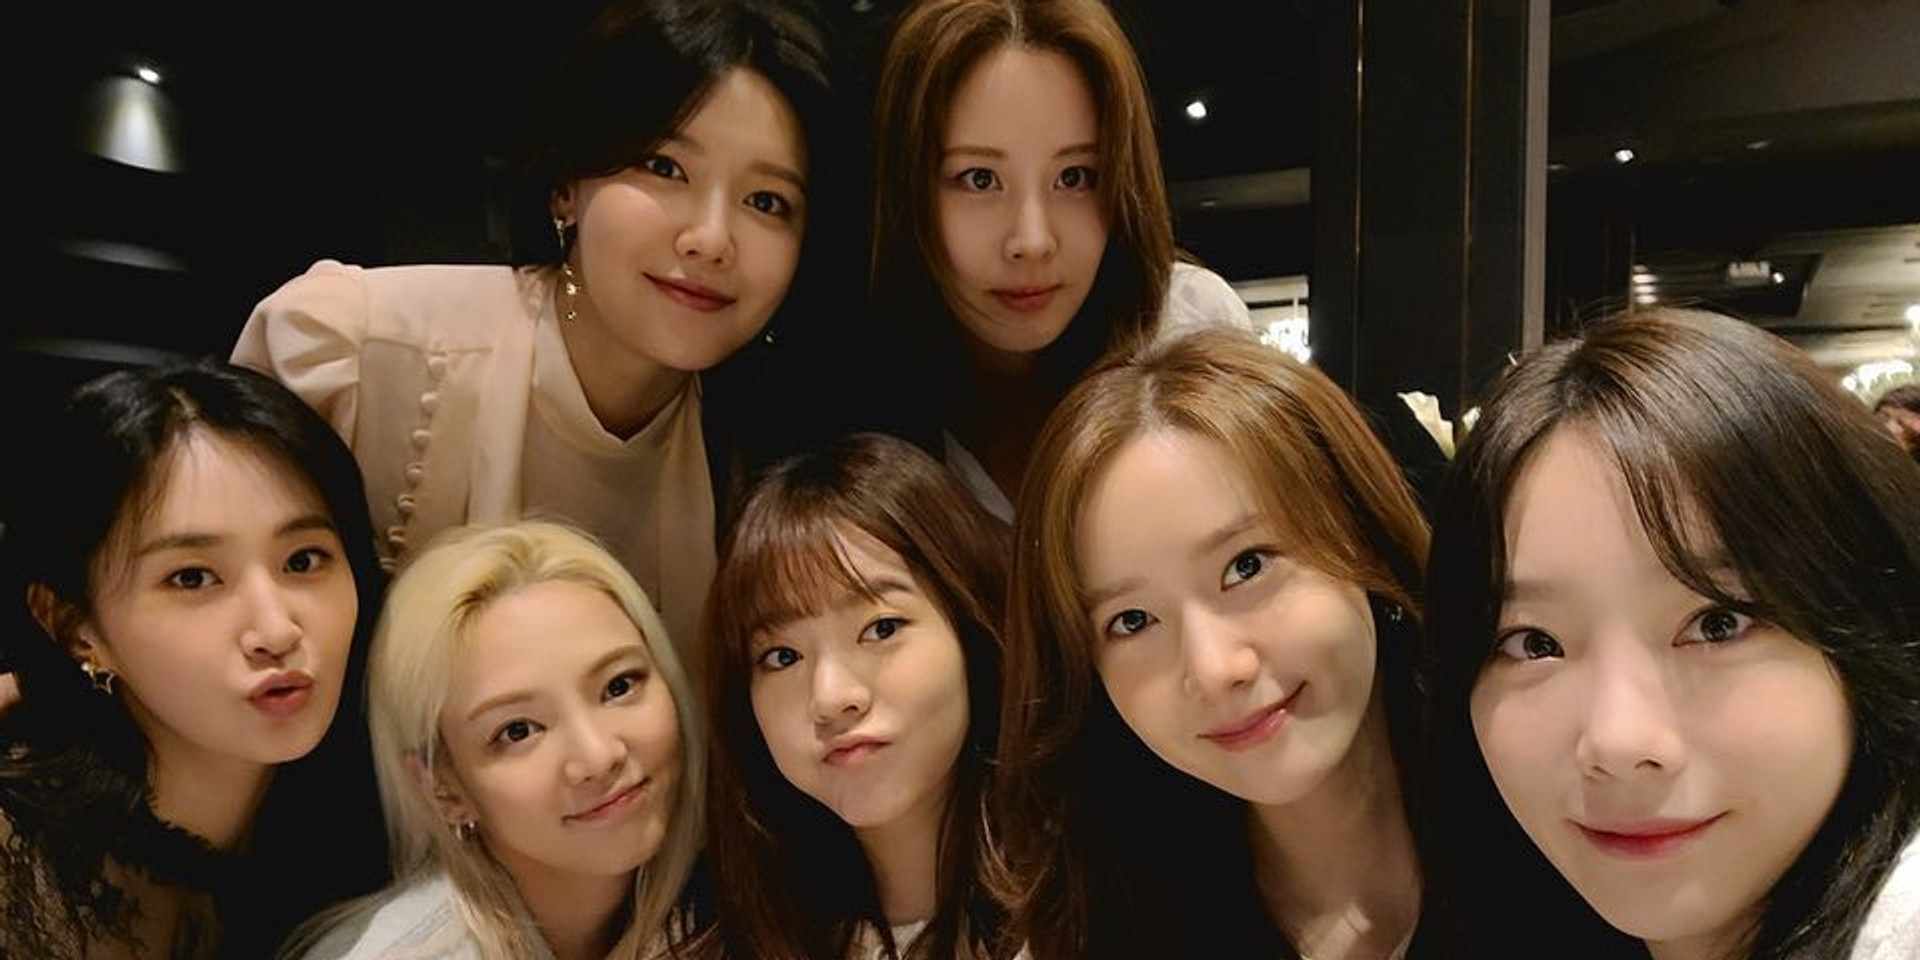 Girls' Generation made their fans' lives 'Complete' with a heartwarming reunion at their manager's wedding